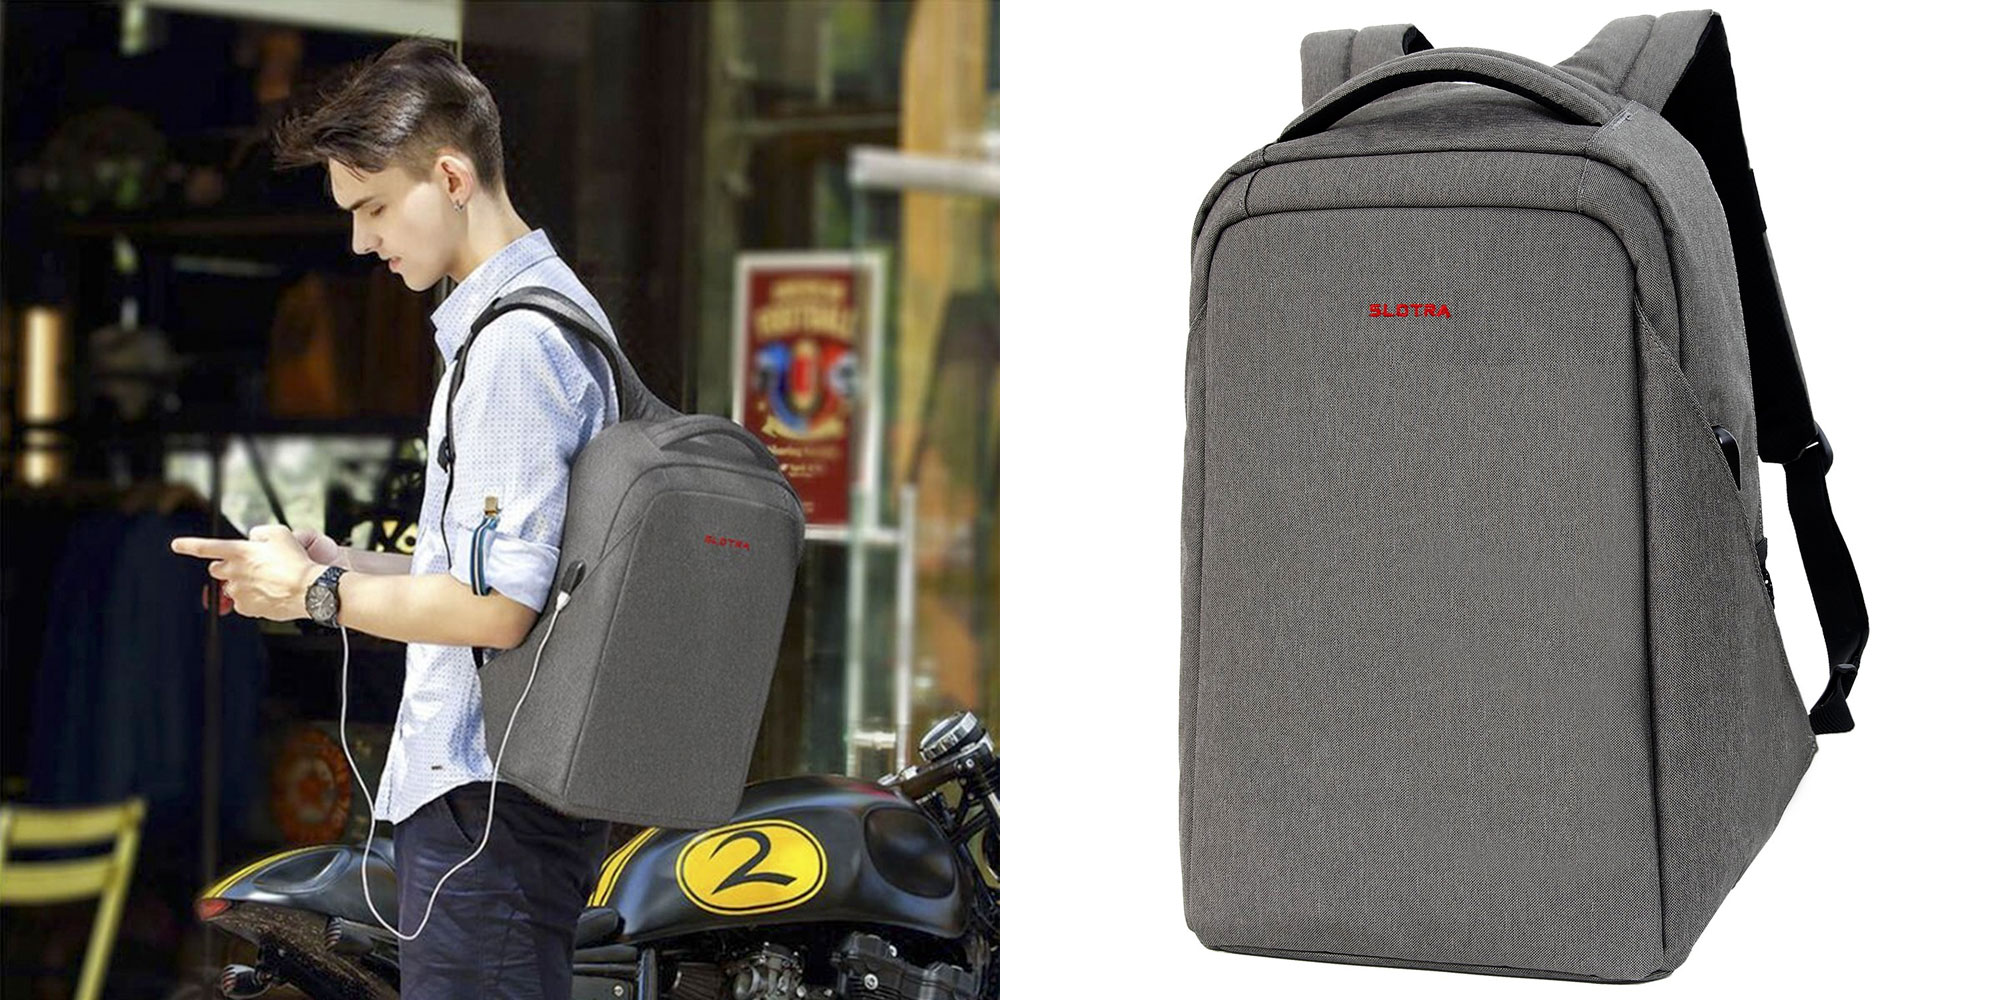 Carry your MacBook & iPad in style w/ these backpacks from $12.50 Prime shipped